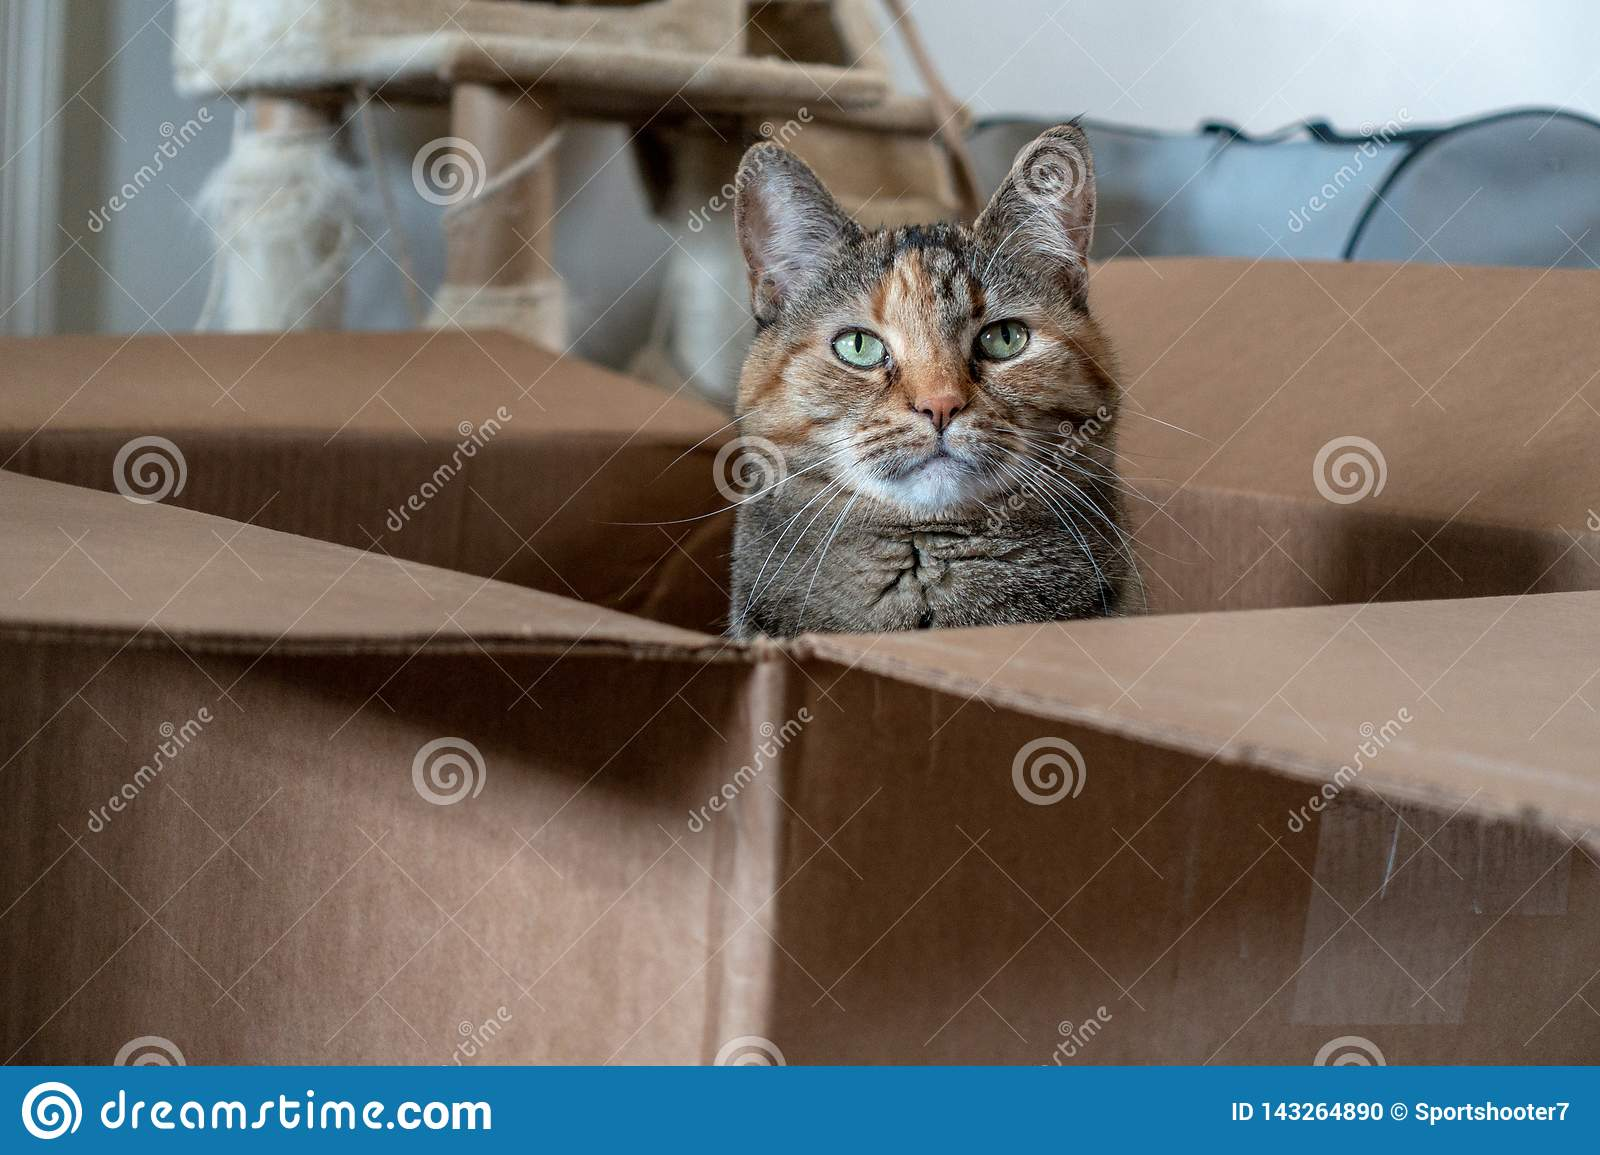 Playful domestic Tortoiseshell cat poses in a brown cardboard box.